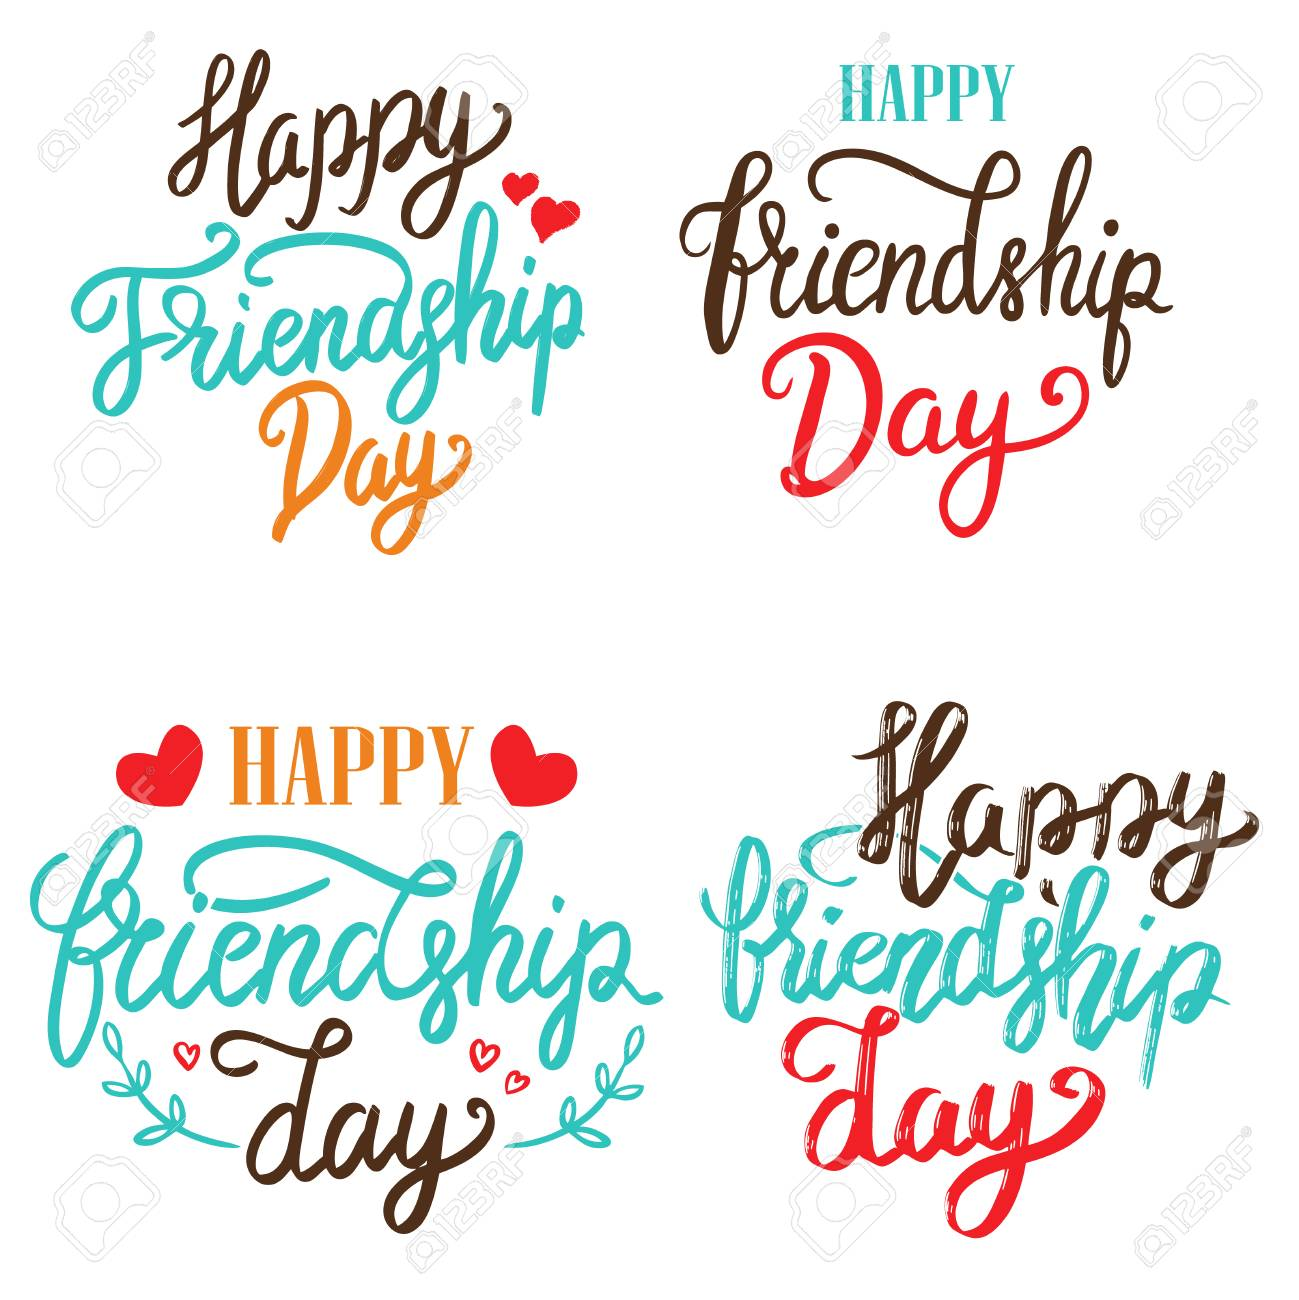 Happy Friendship Day. Set of hand drawn lettering phrases on white background. Design element for poster, greeting card. Vector illustration - 81715684